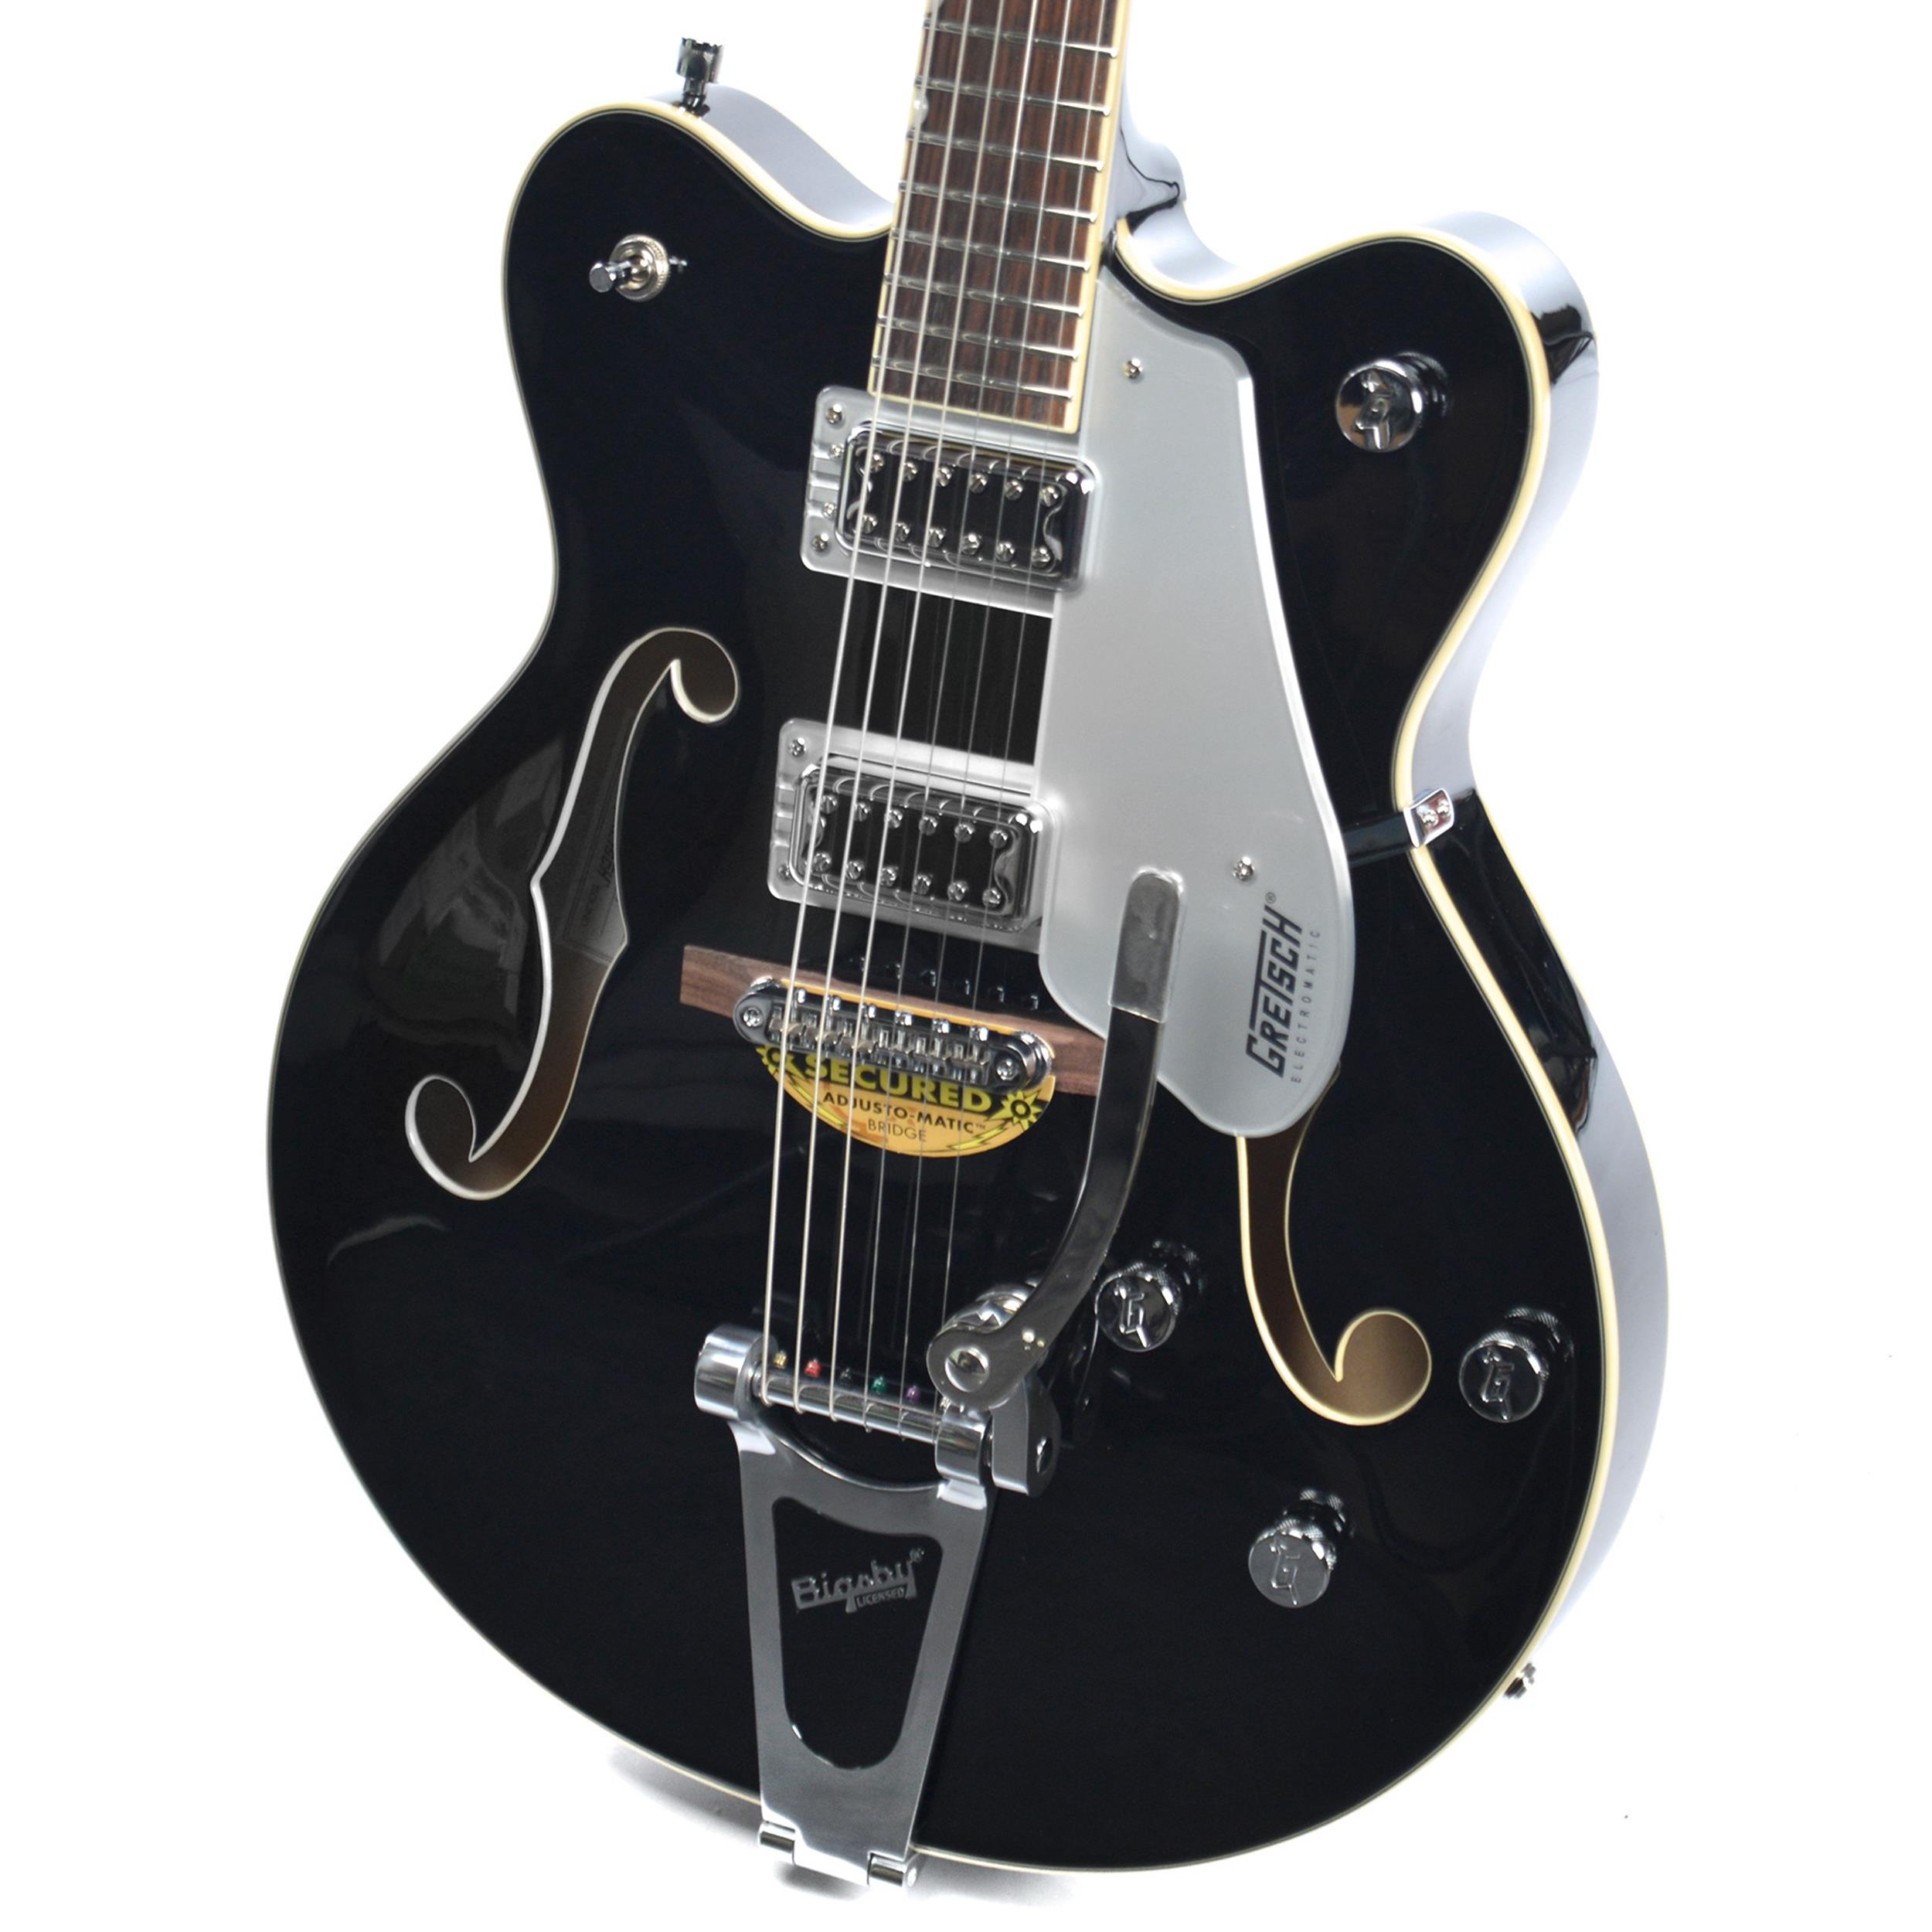 GRETSCH G5422T BLACK Electromatic Hollow Body Double-Cut with Bigsby